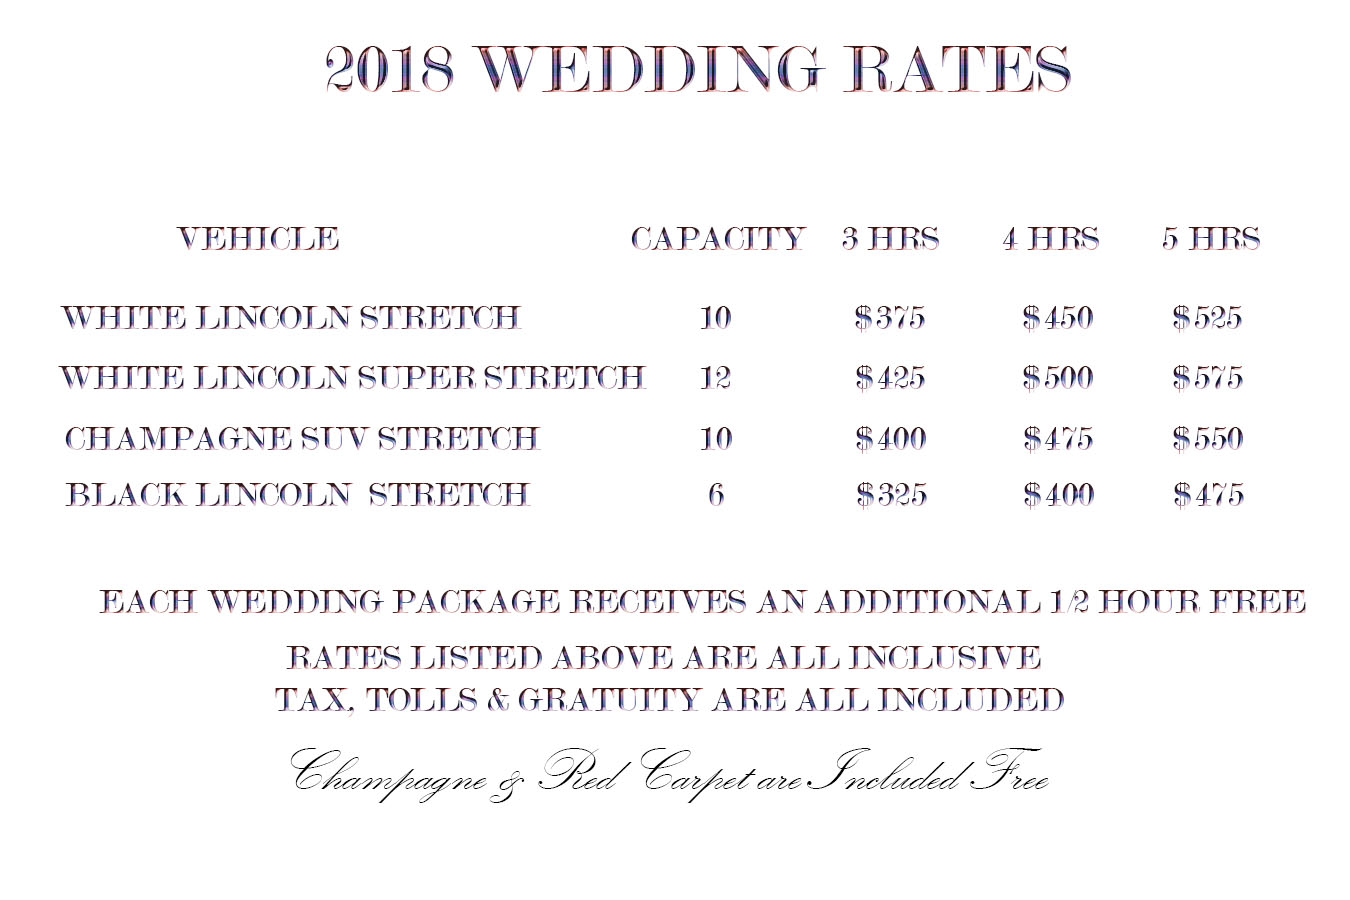 Wedding Rates for 2018